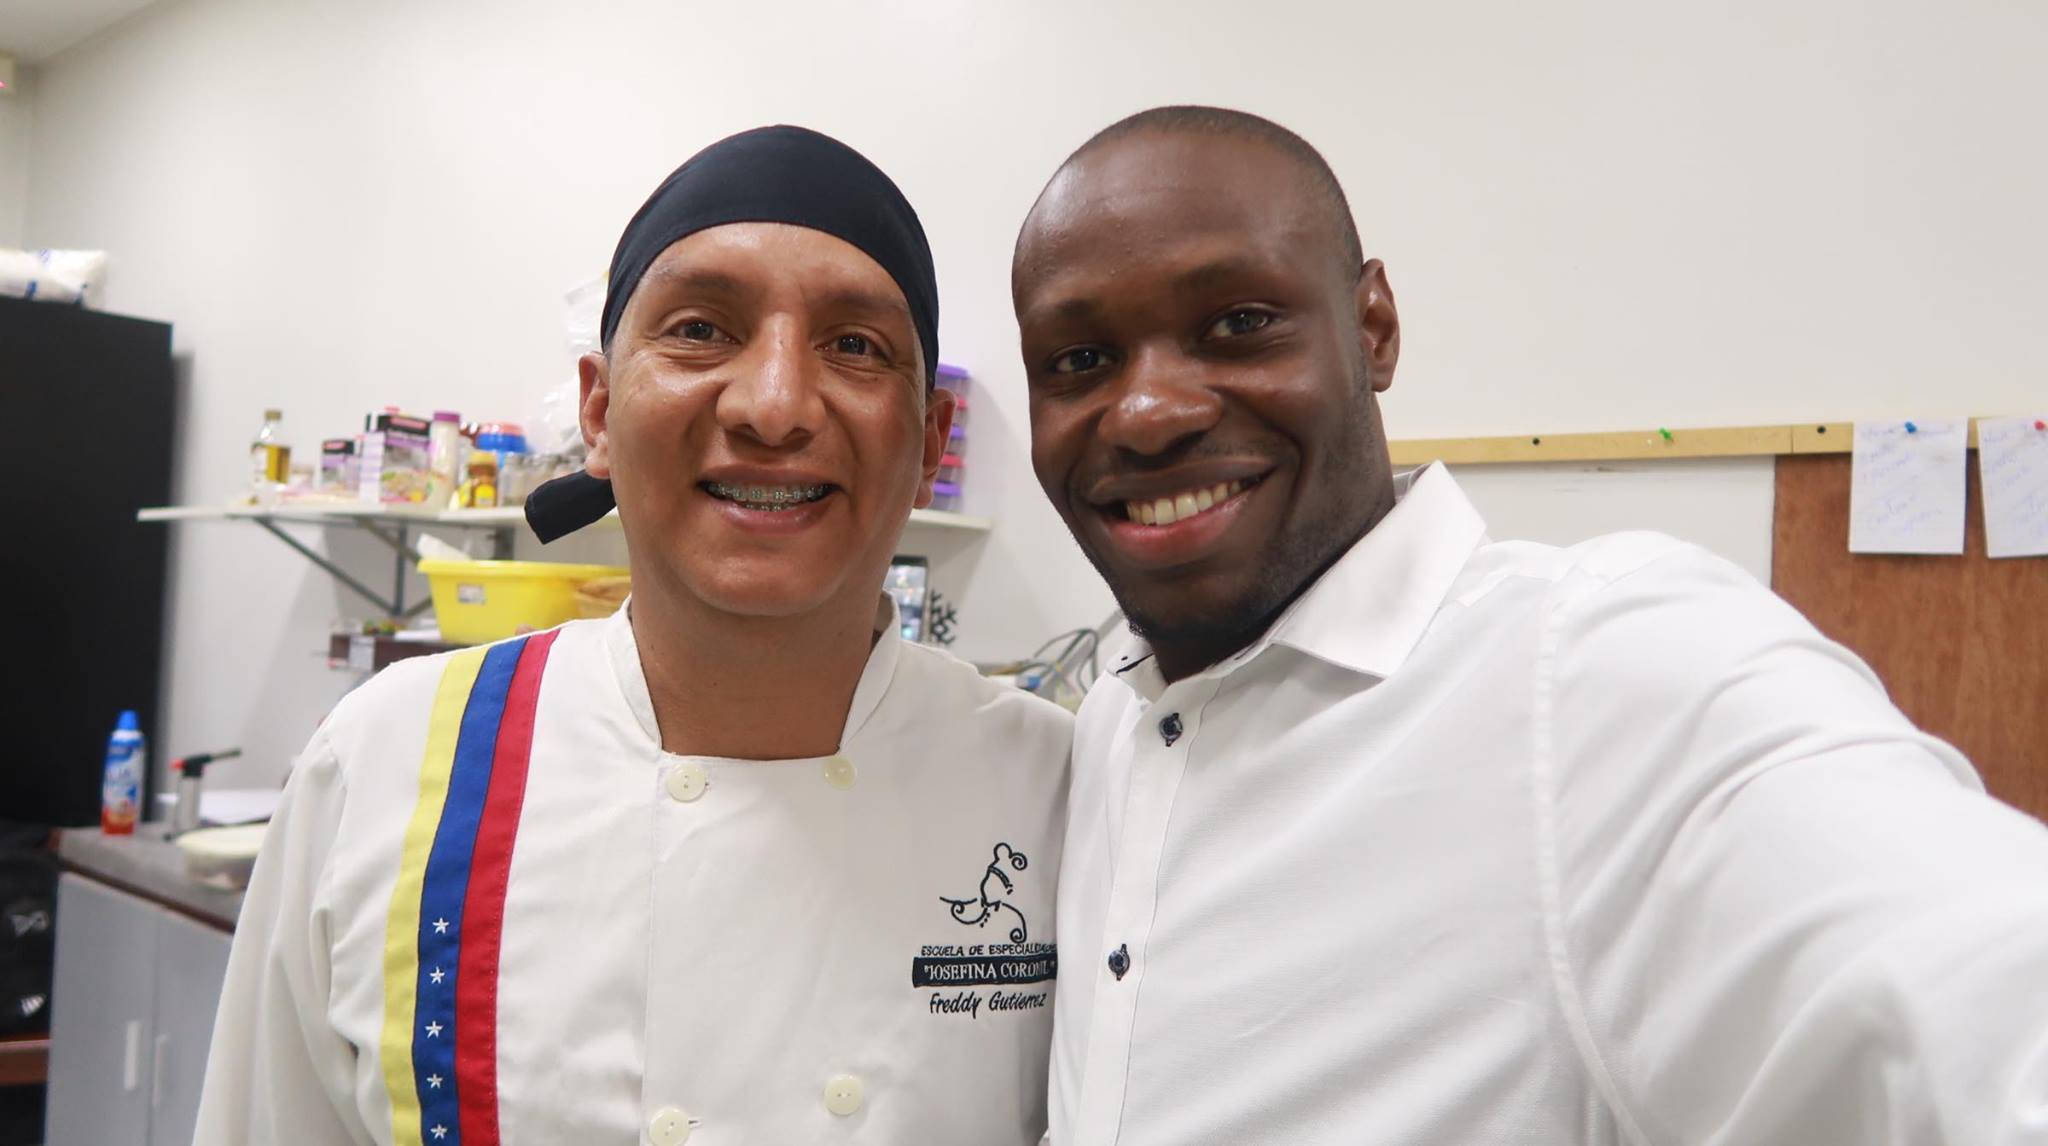 José Semple with the Chef cook